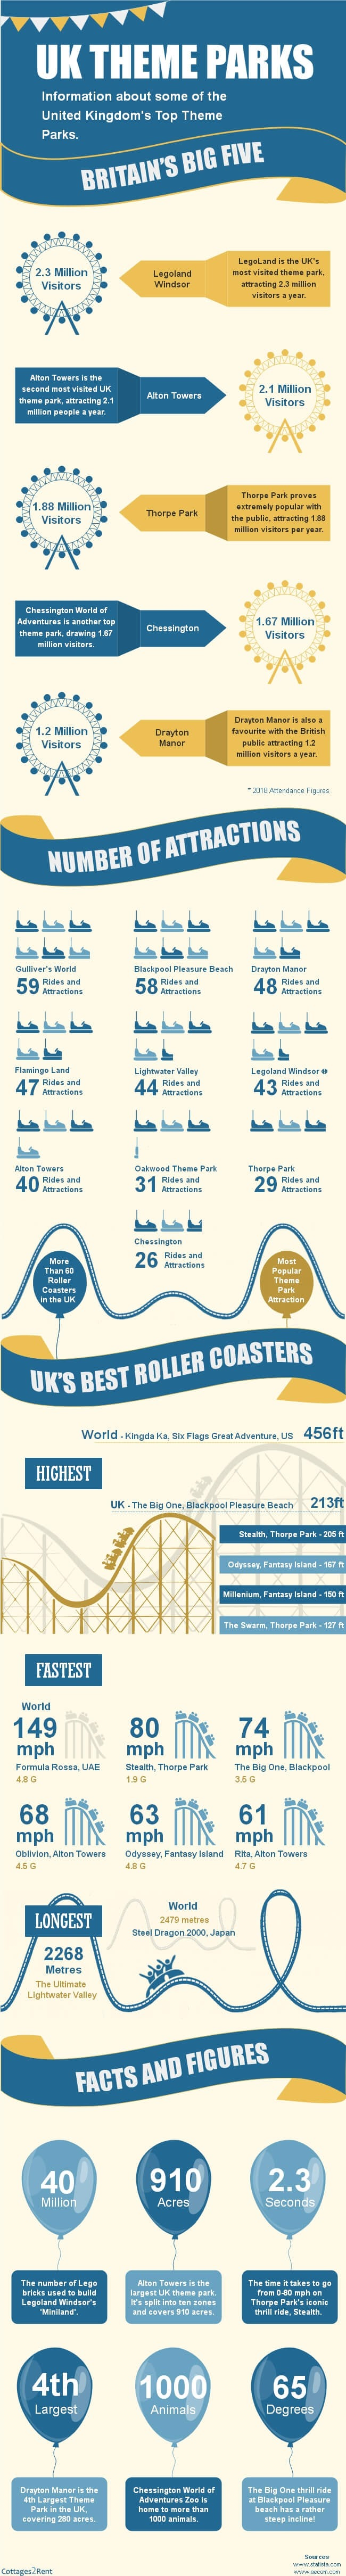 Uk Theme Parks #infographic #Entertainment